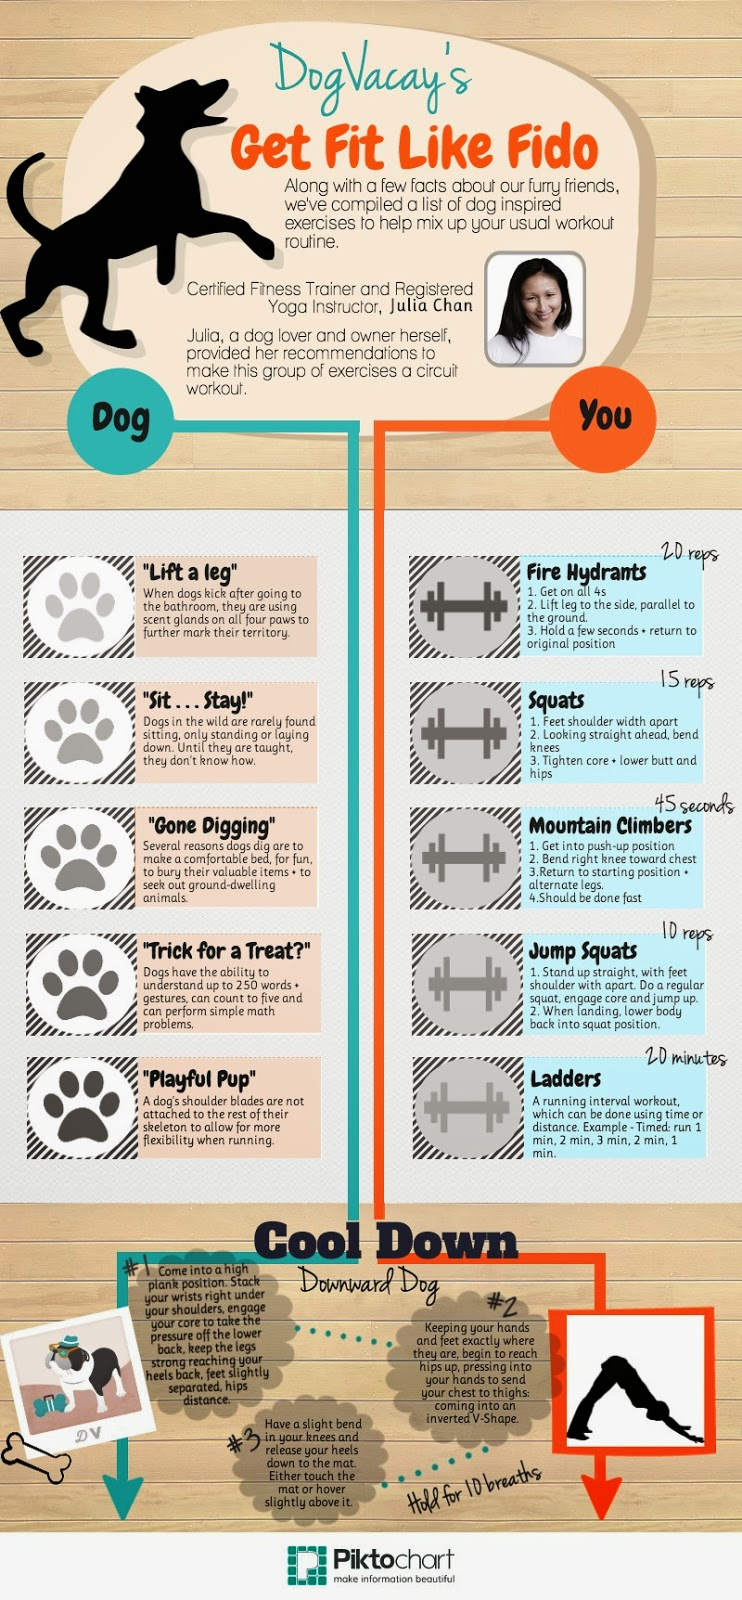 Dog Vacay Get Fit With Fido Infographic